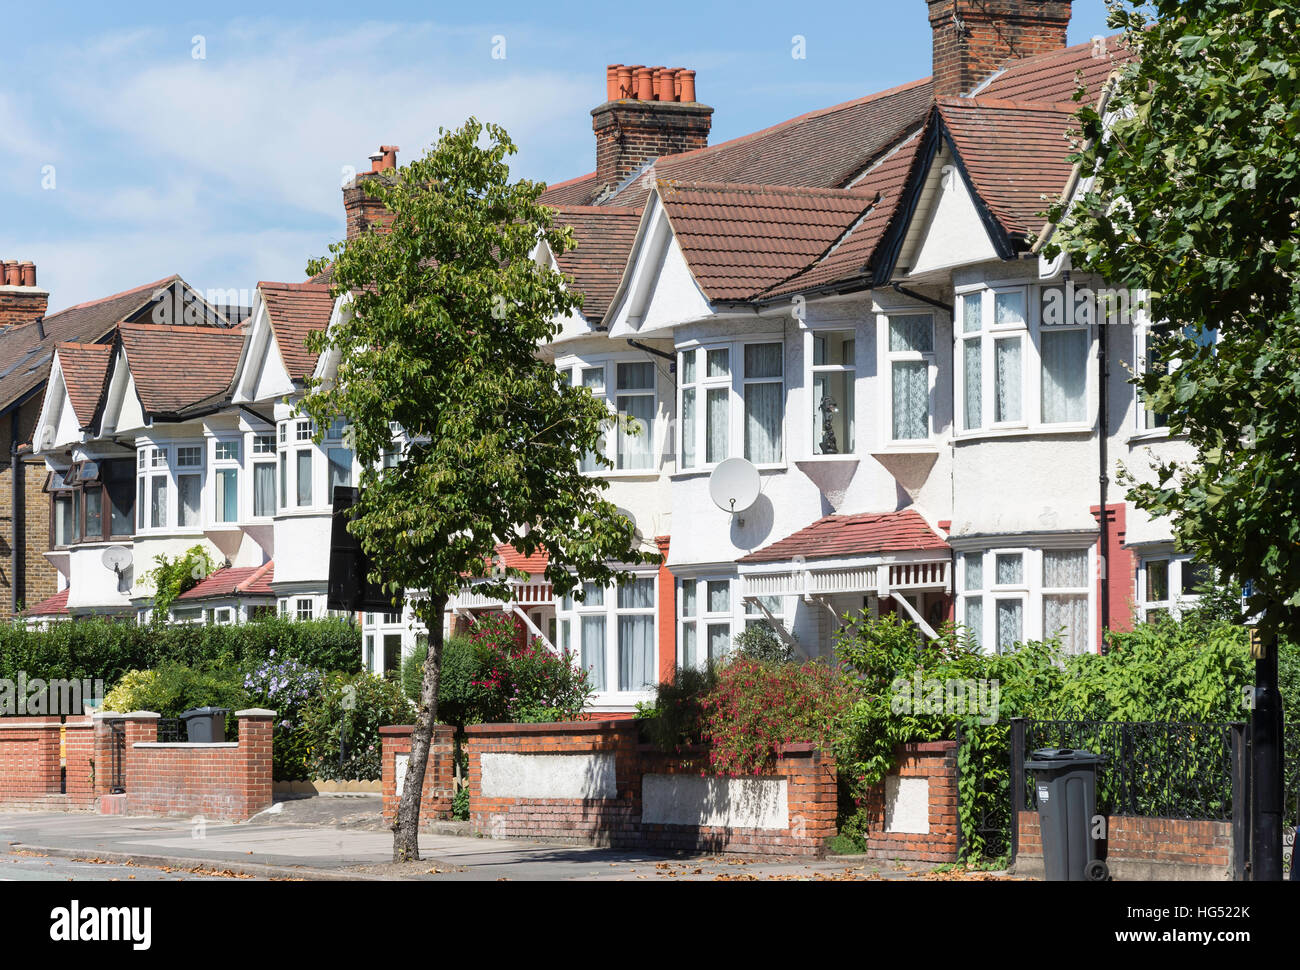 Residential houses on Boston Manor Road, Brentford, London Borough of Hounslow, Greater London, England, United Stock Photo